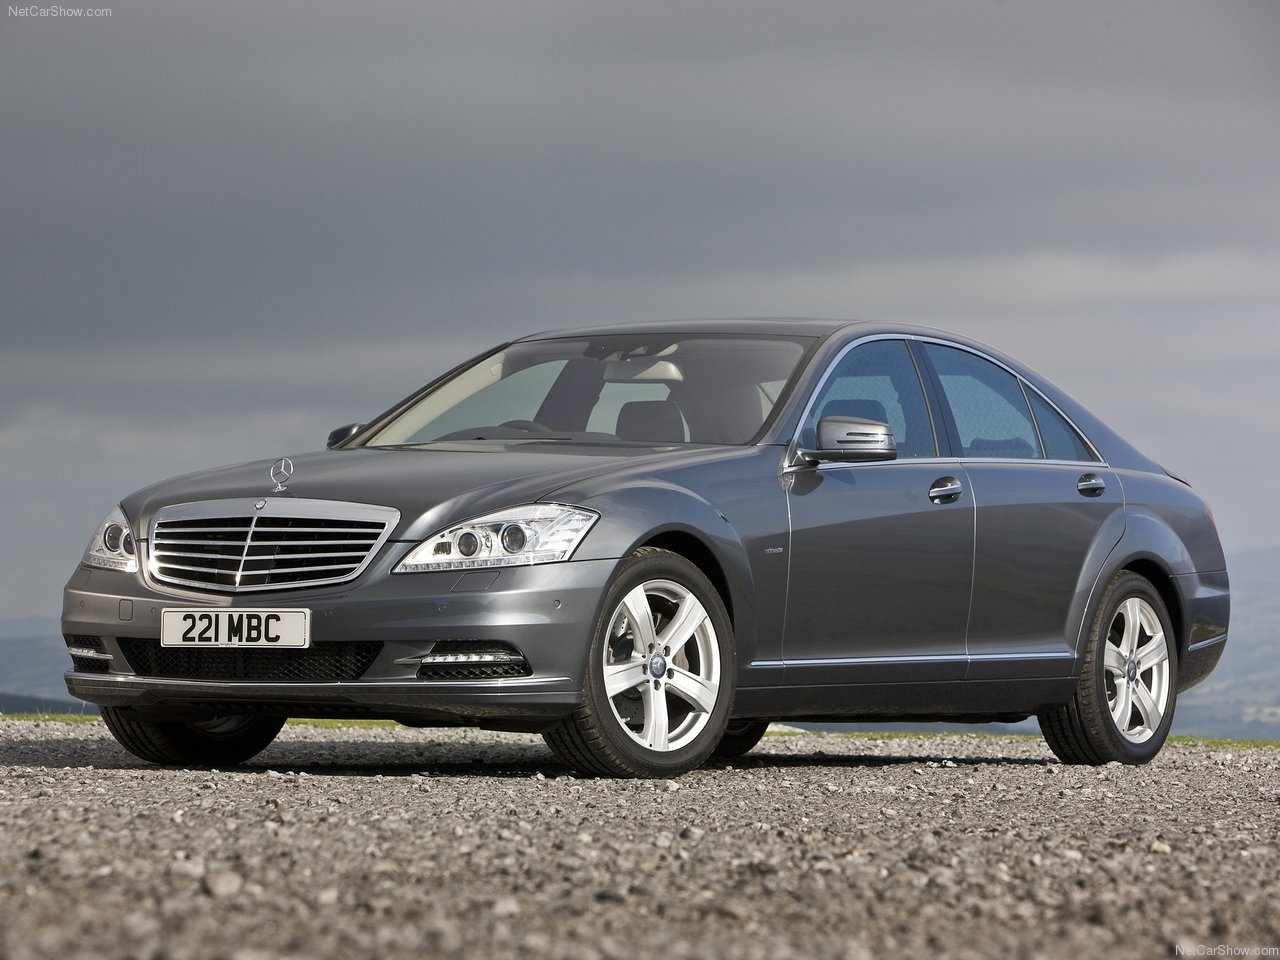 2010 mercedes benz s class uk version mercedes benz cars